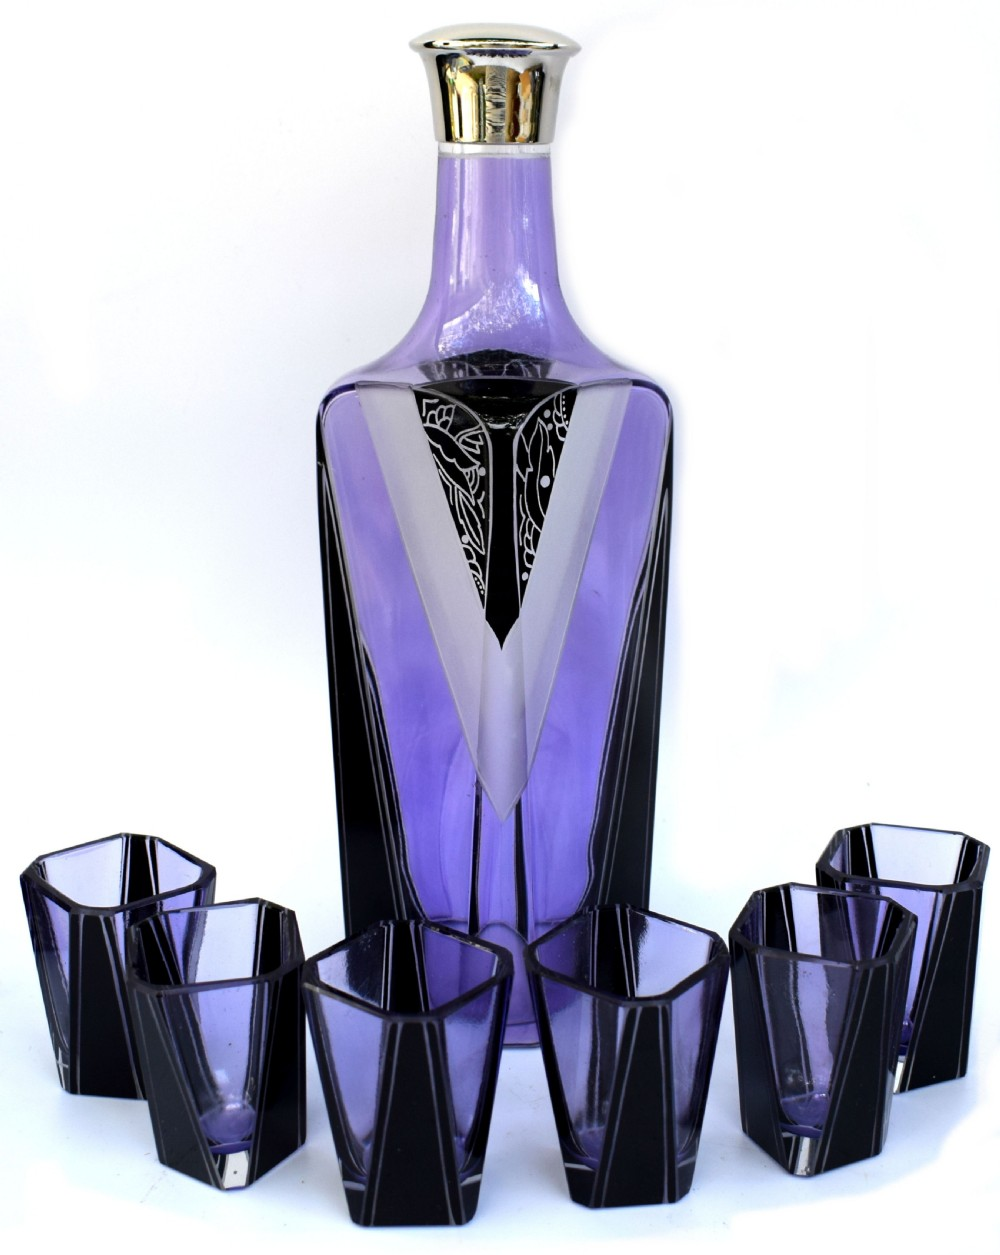 art deco czech glass enamel decanter set